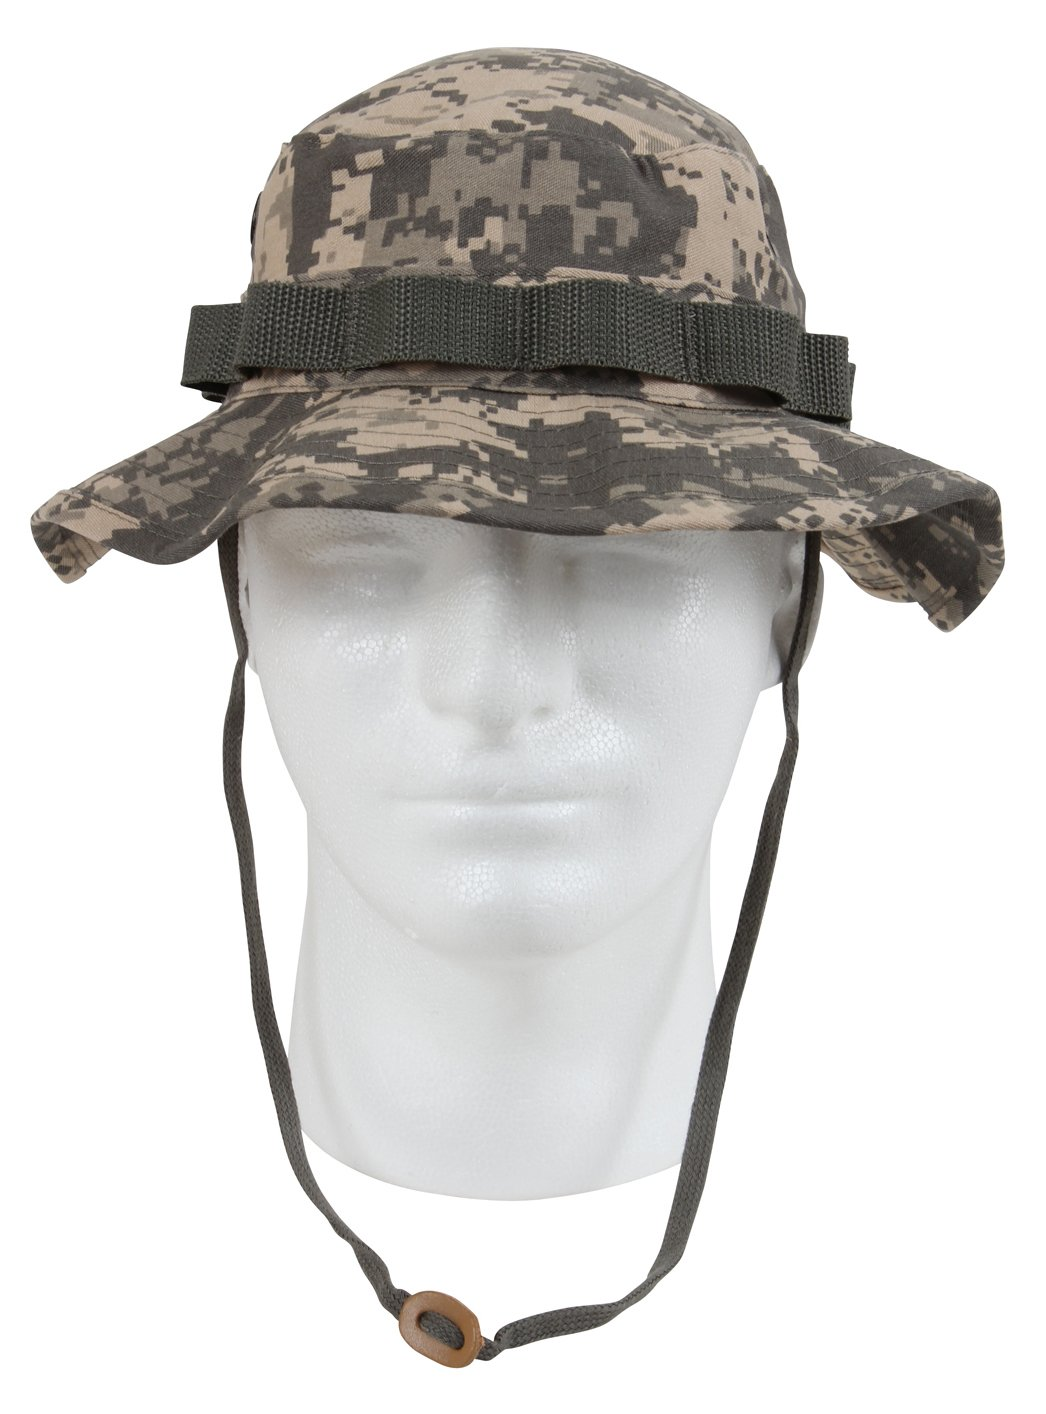 49bbb314c13 Amazon.com  Rothco Boonie Hat  Sports   Outdoors